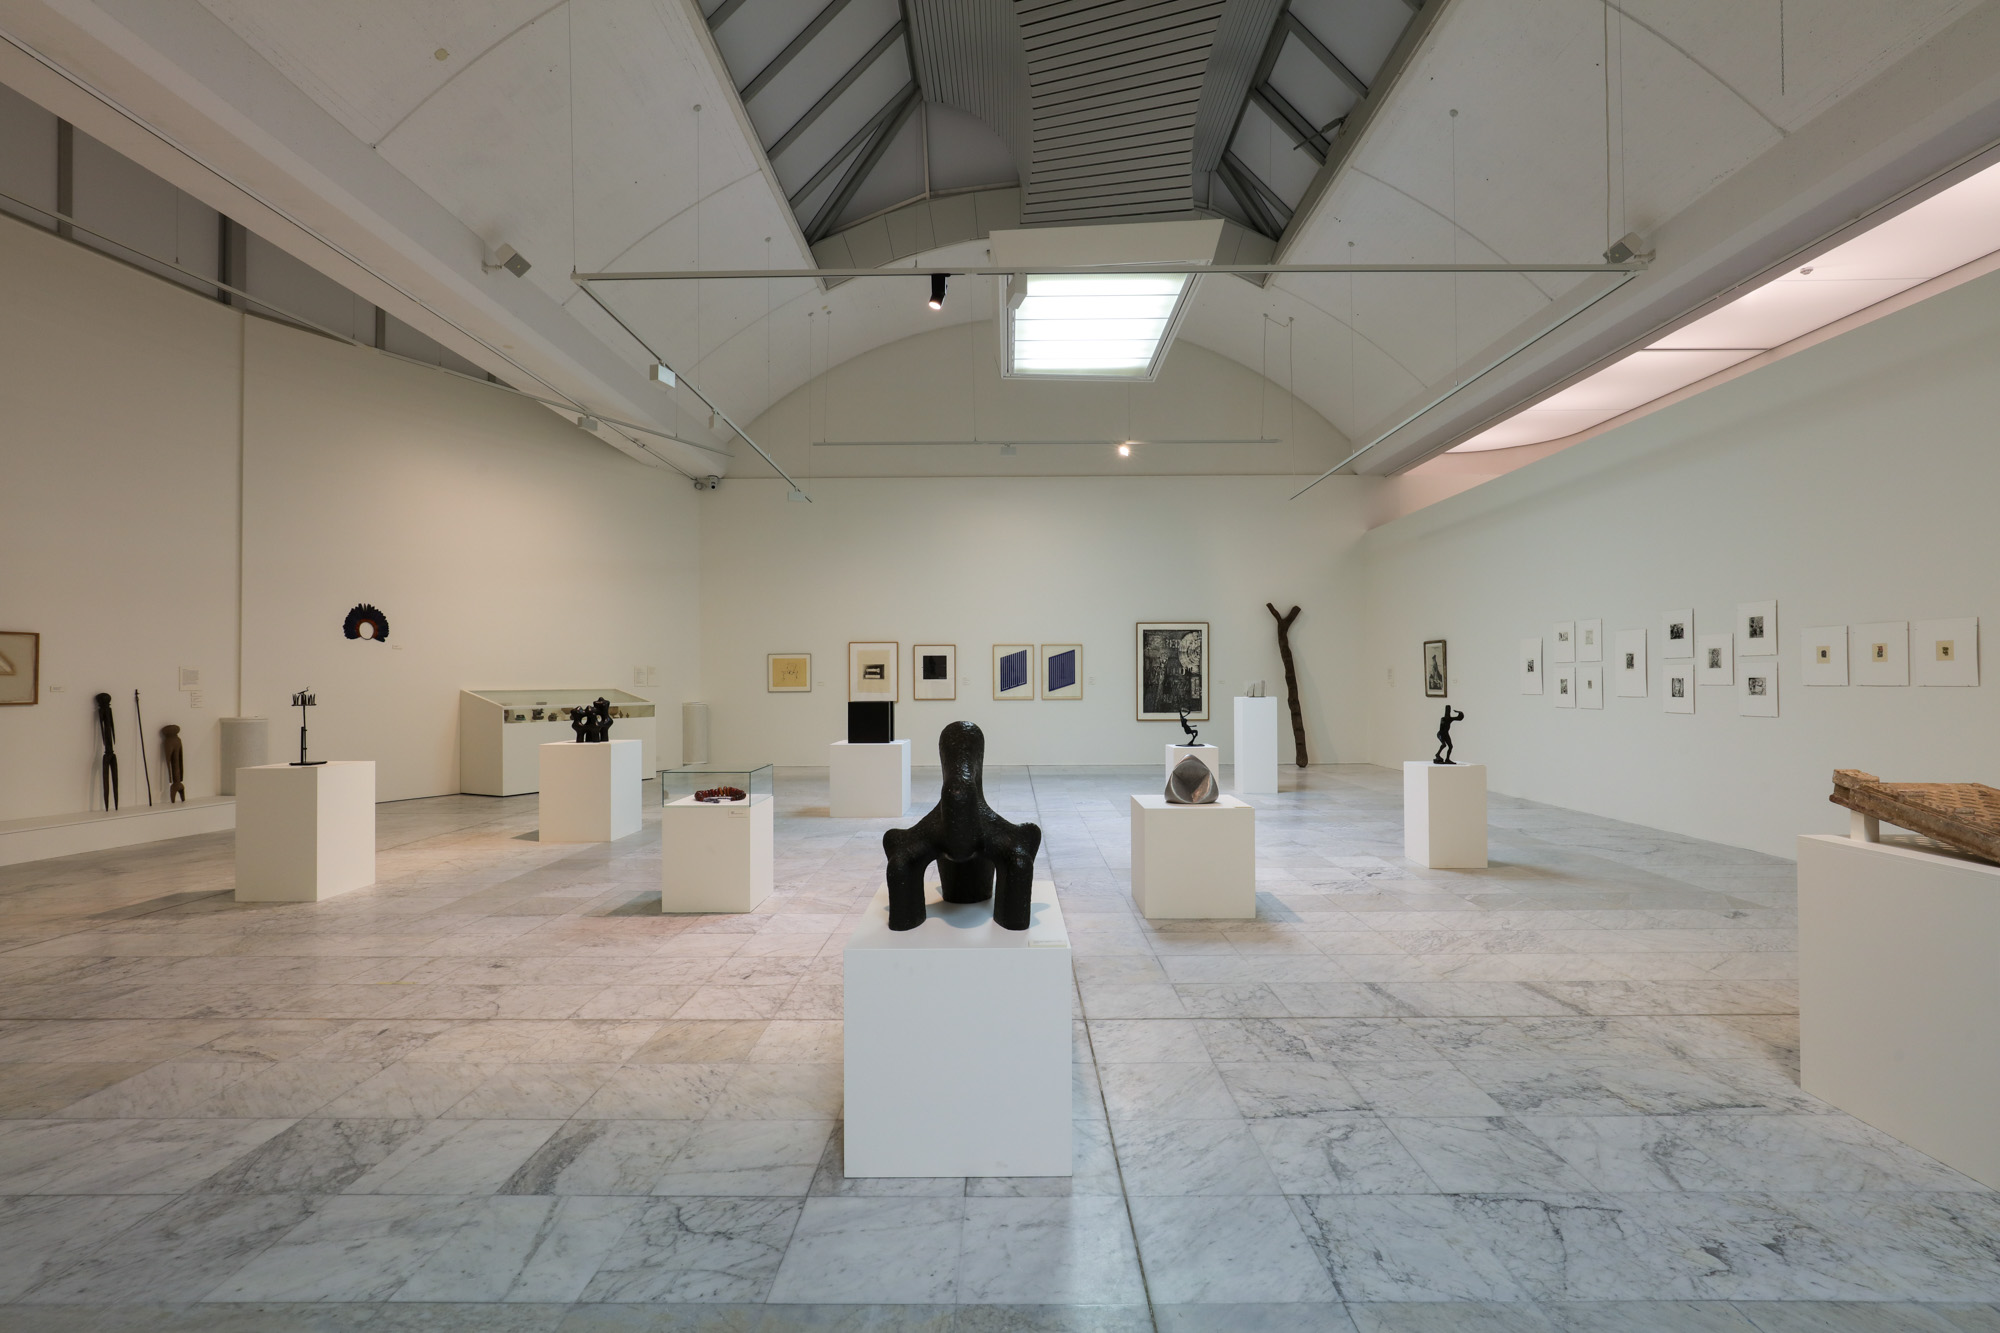 Installation view, Intimate and Monumental - Jan Groth and Steingrim Laursen Collection, Stavanger Kunstmuseum 2015. Photo Courtesy Stavanger Kunstmuseum. Photographer: Oddbjørn Løken Aarstad